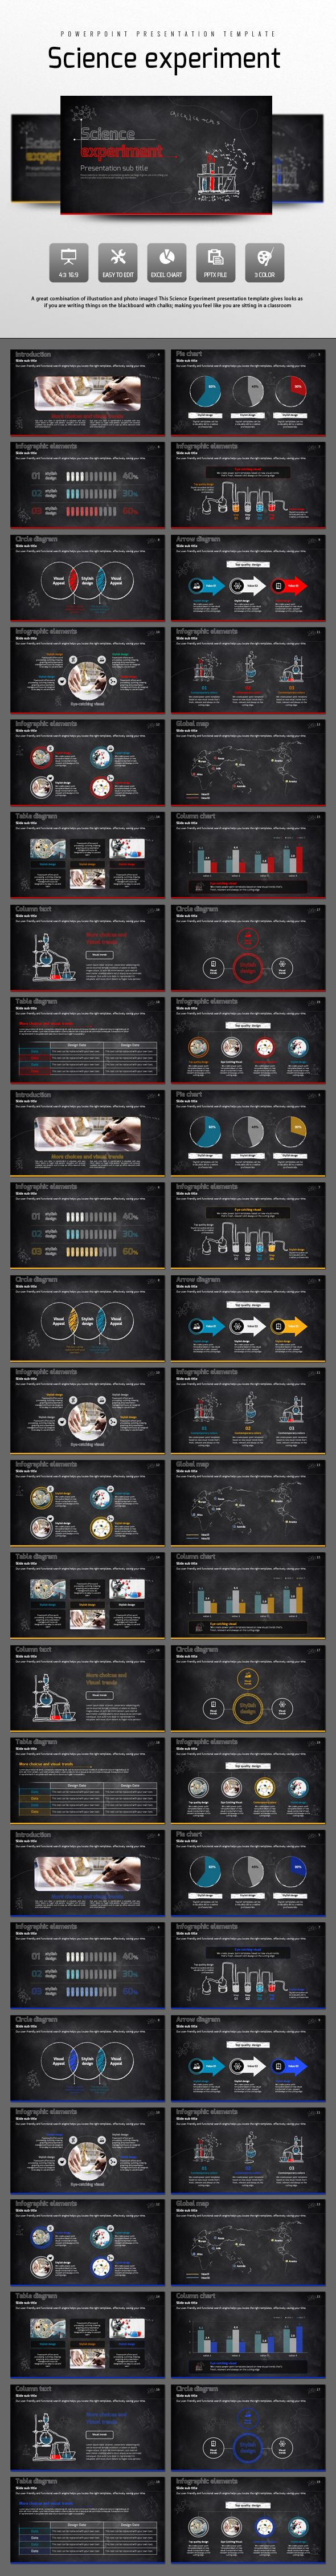 Science Experiment PowerPoint Template. Download here: http://graphicriver.net/item/science-experiment/14875335?ref=ksioks